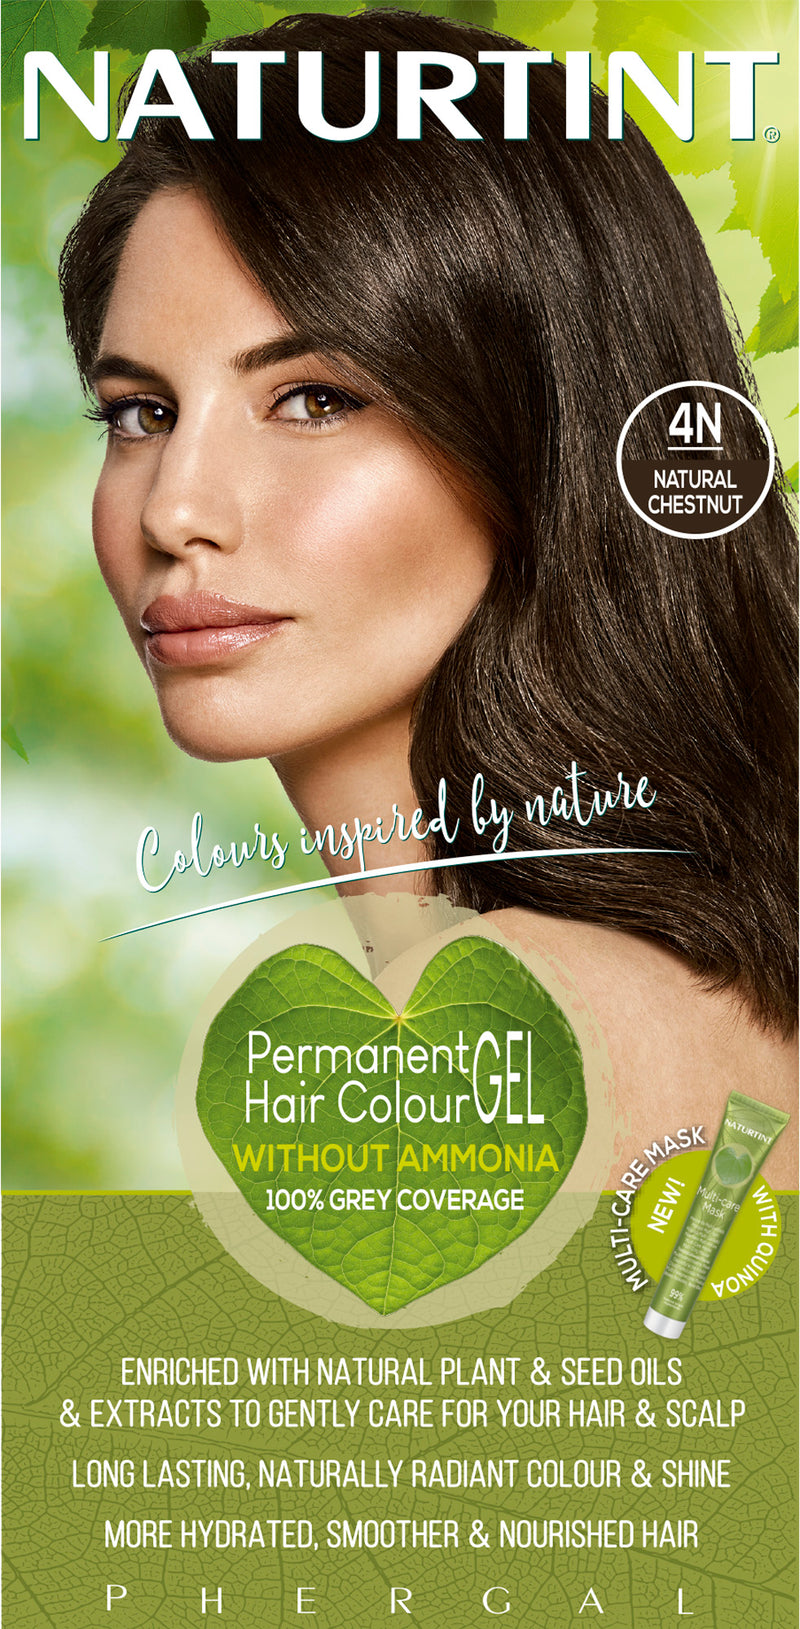 NATURTINT Naturally Better Permanent Hair Colour- Natural Chestnut